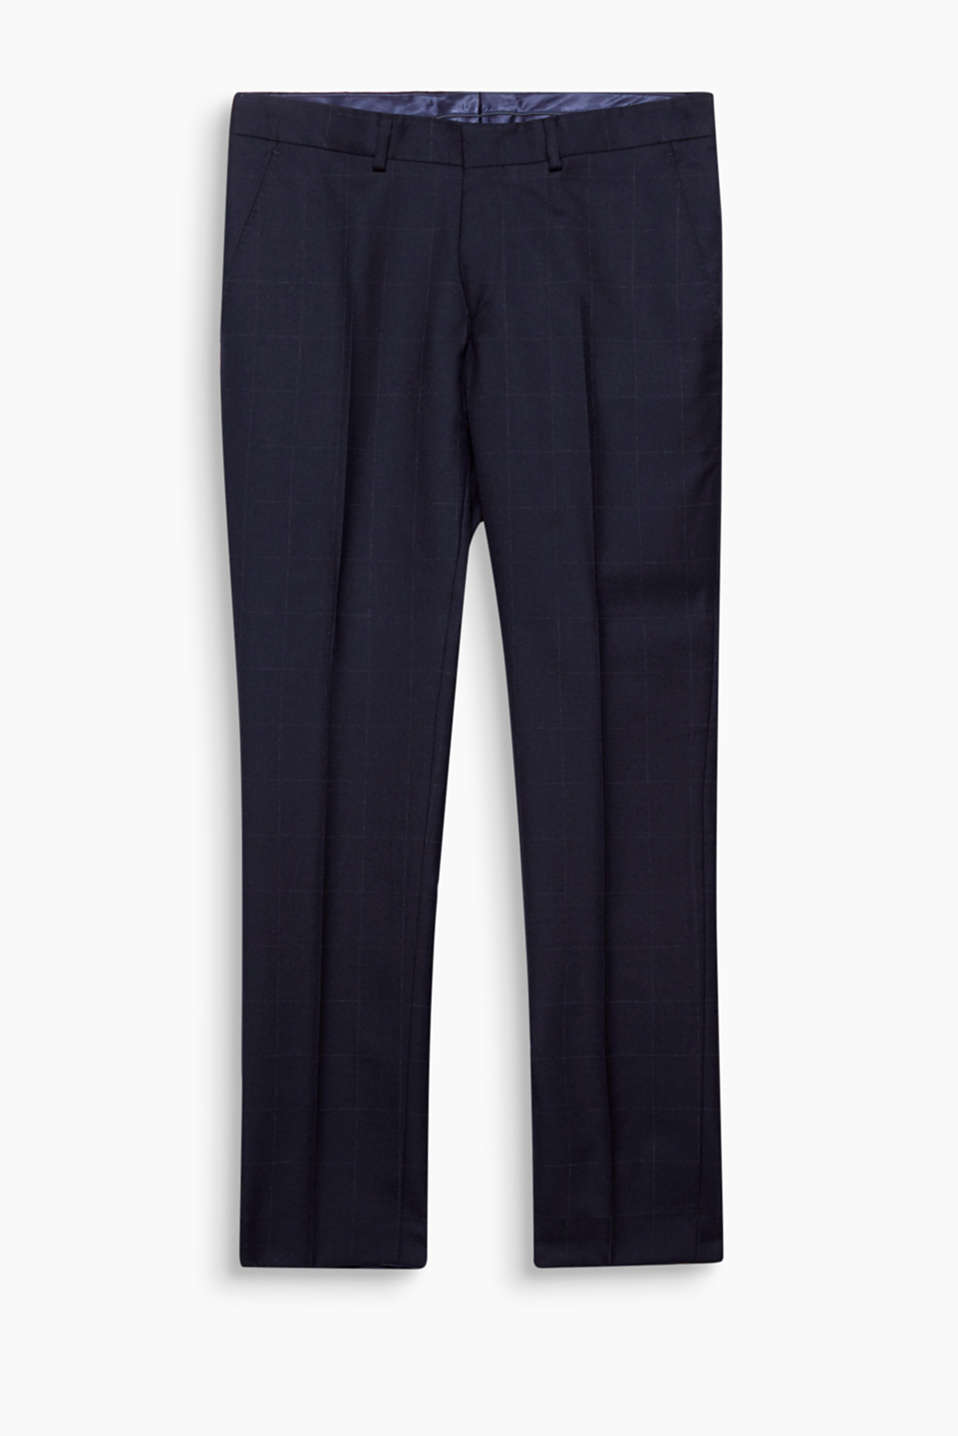 Suit up! The blended new wool and fine lattice pattern make these premium suit trousers something special.